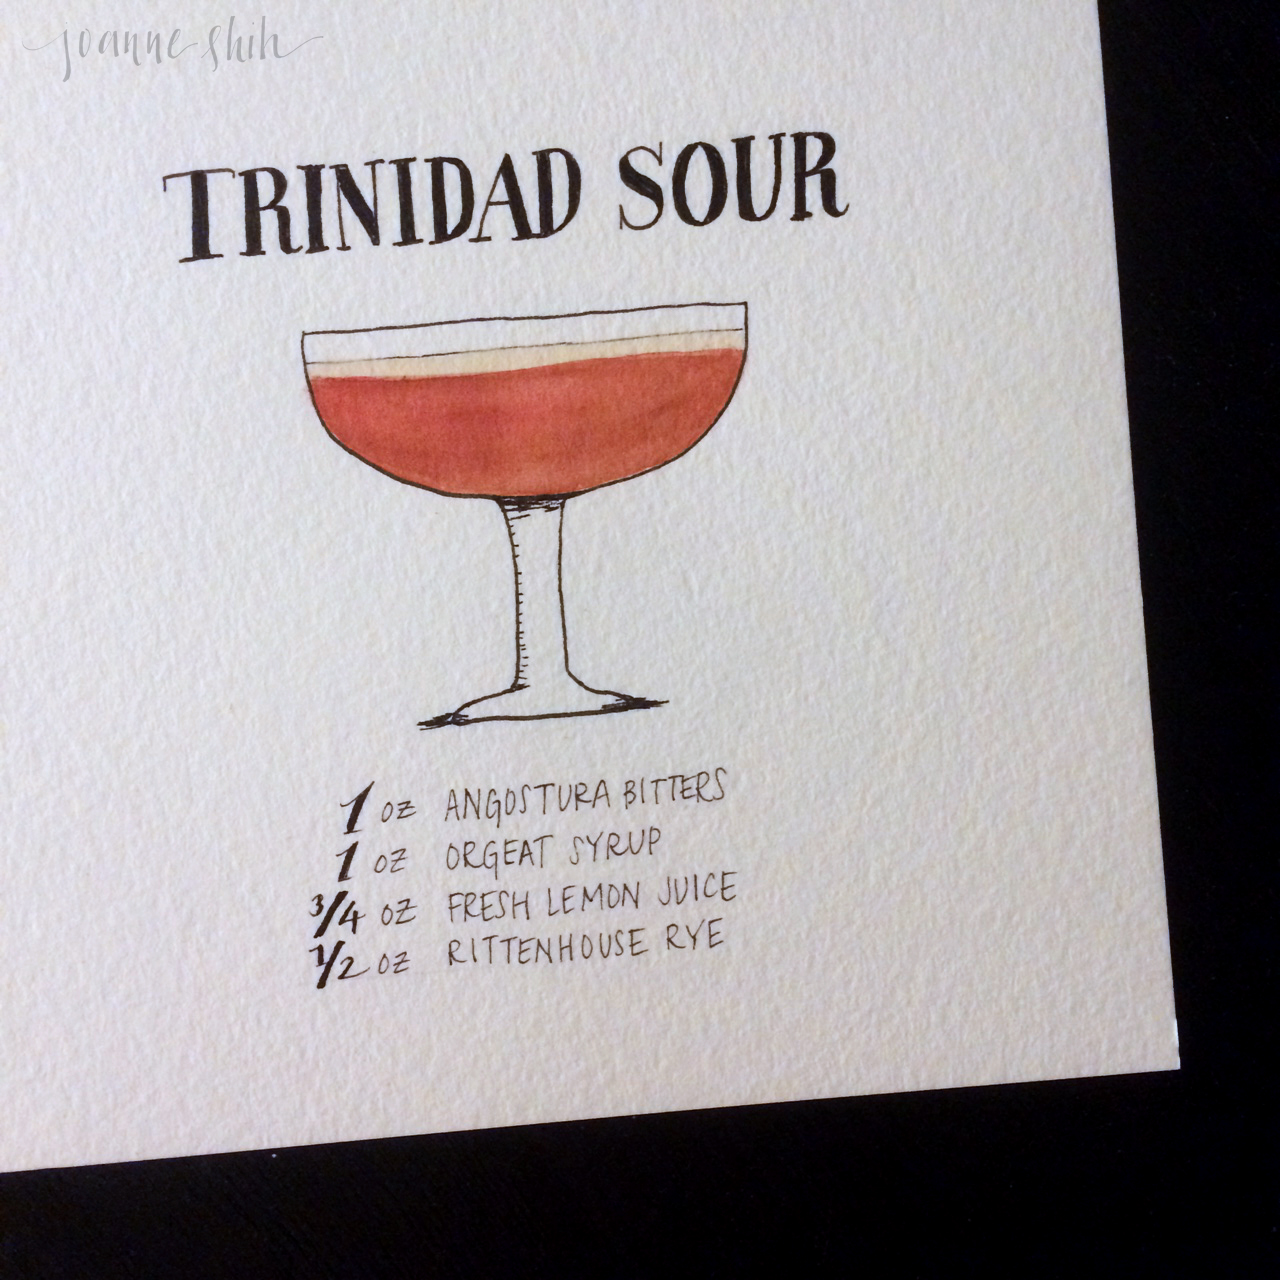 day-177-trinidad-sour.jpg